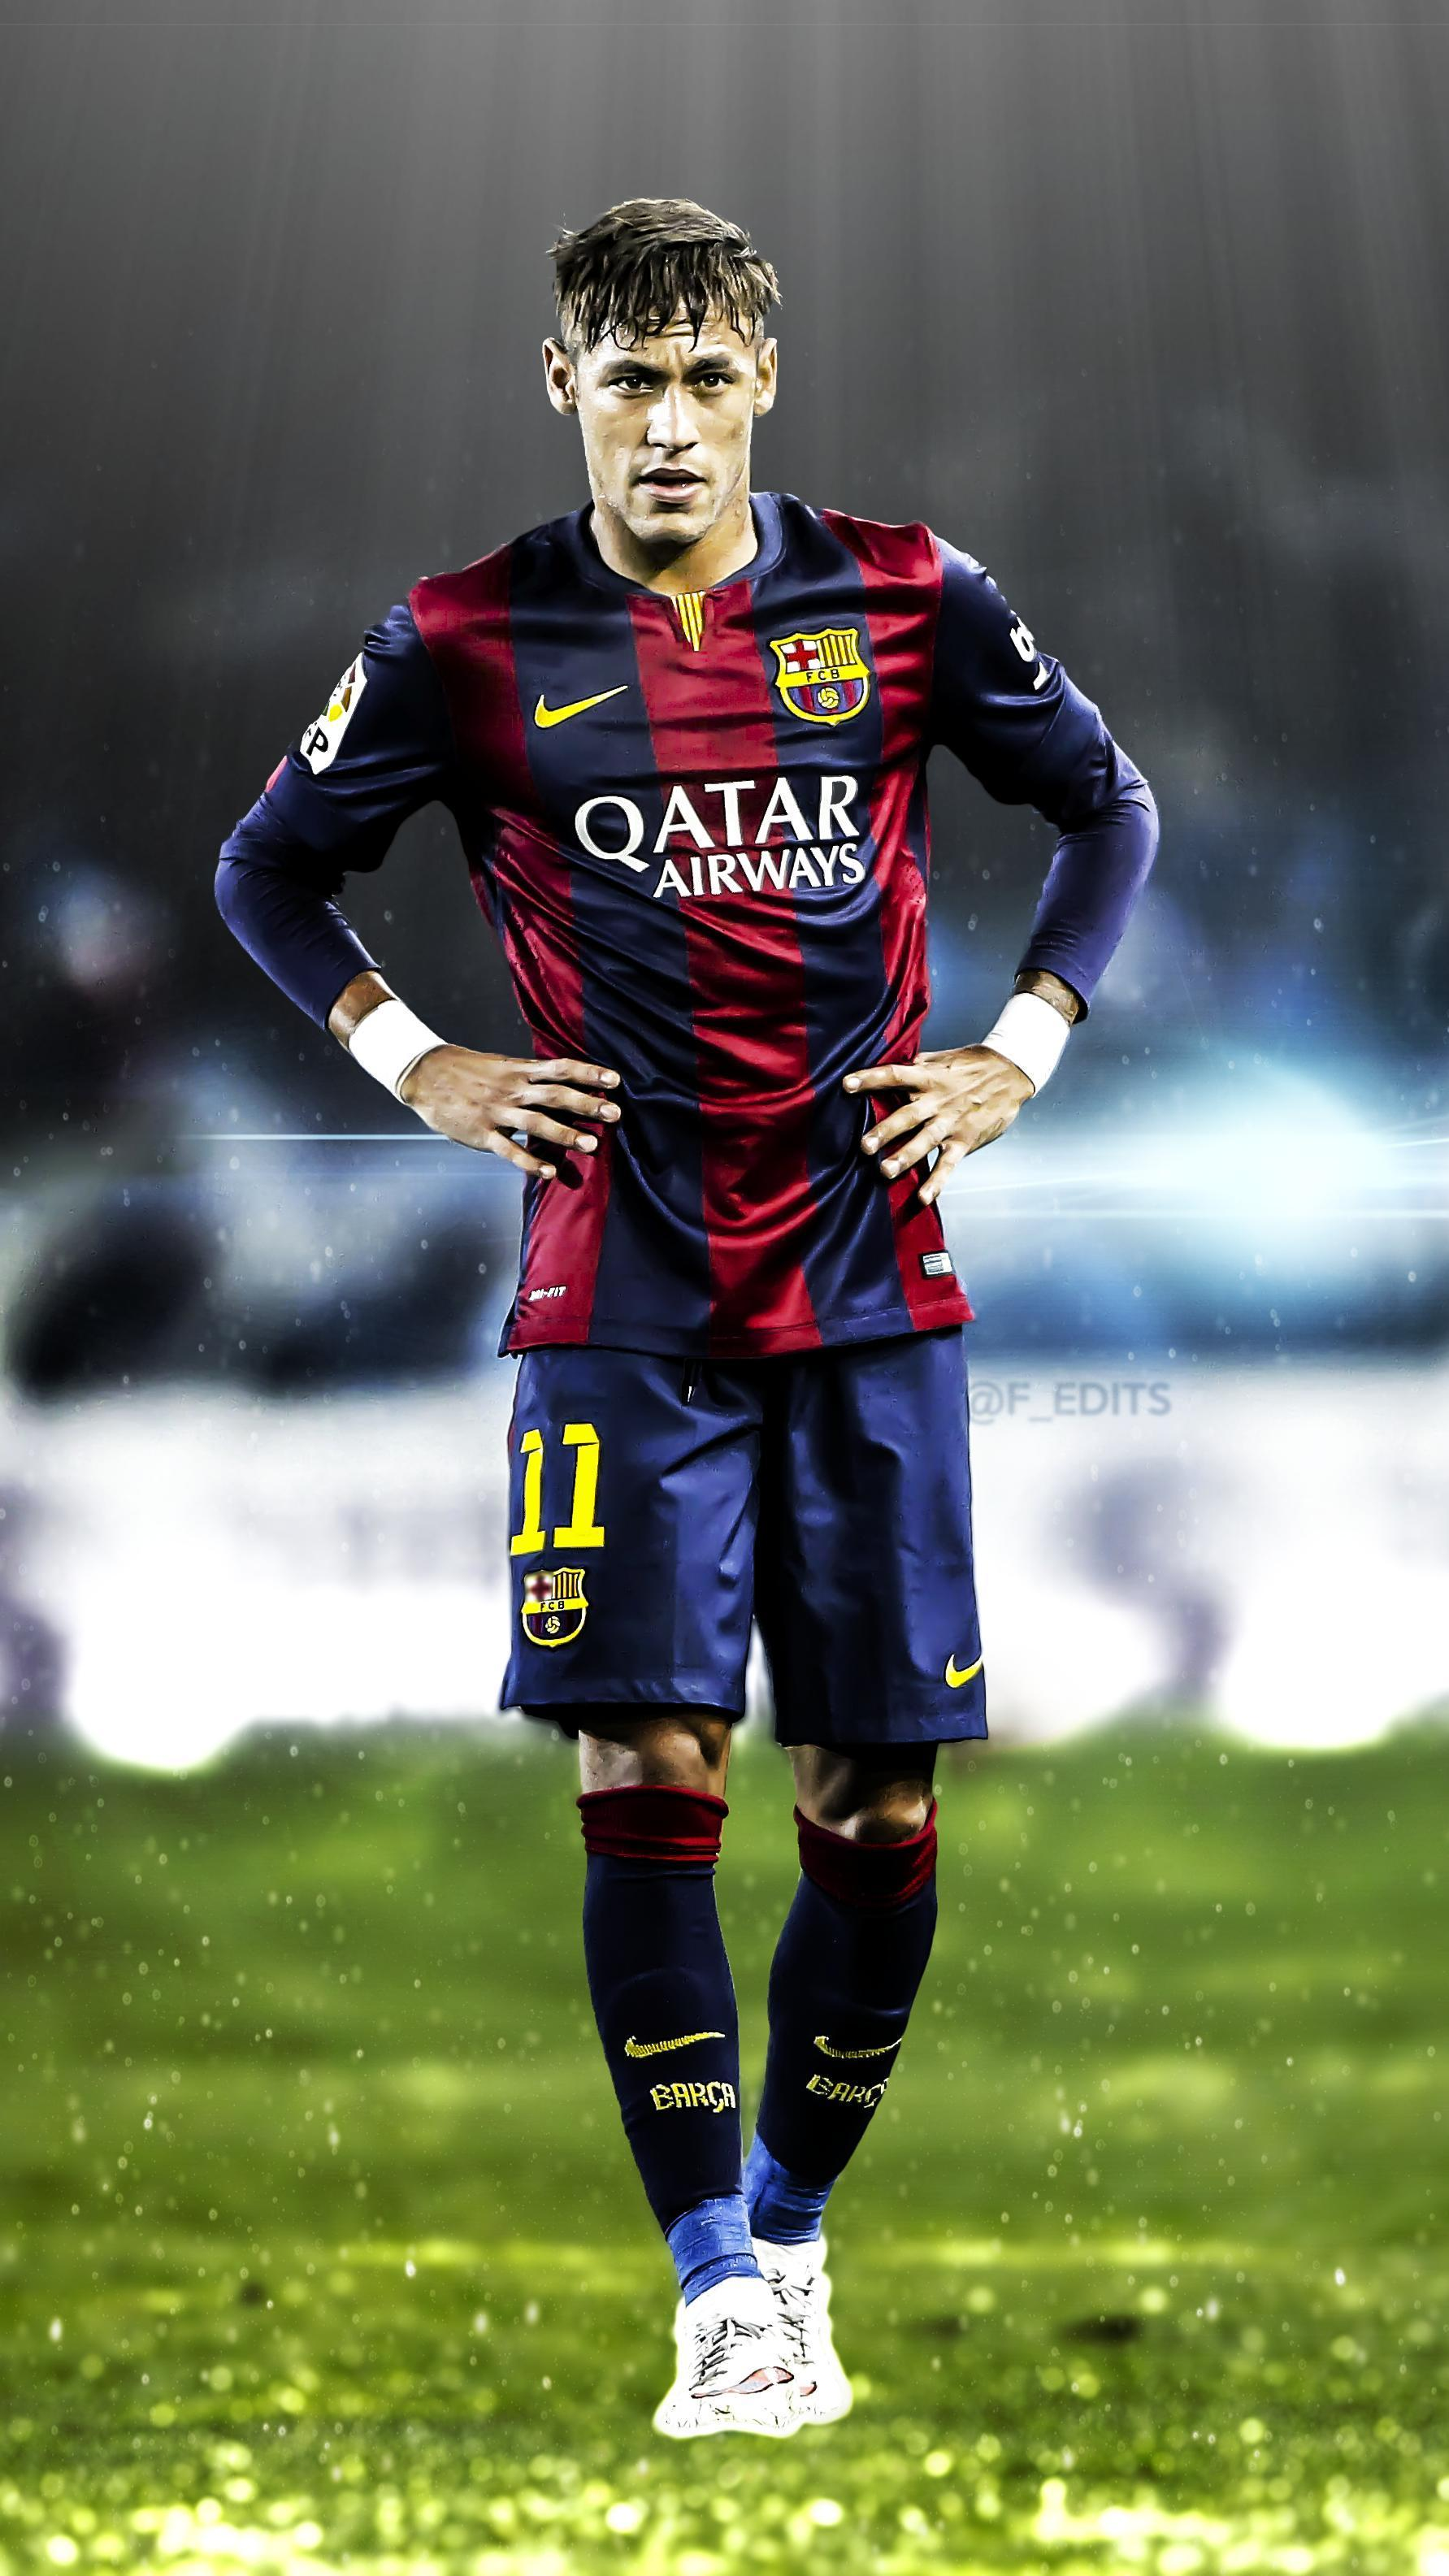 Neymar jr Wallpaper HD Mobile Iphone 6s galaxy • iPhones Wallpapers